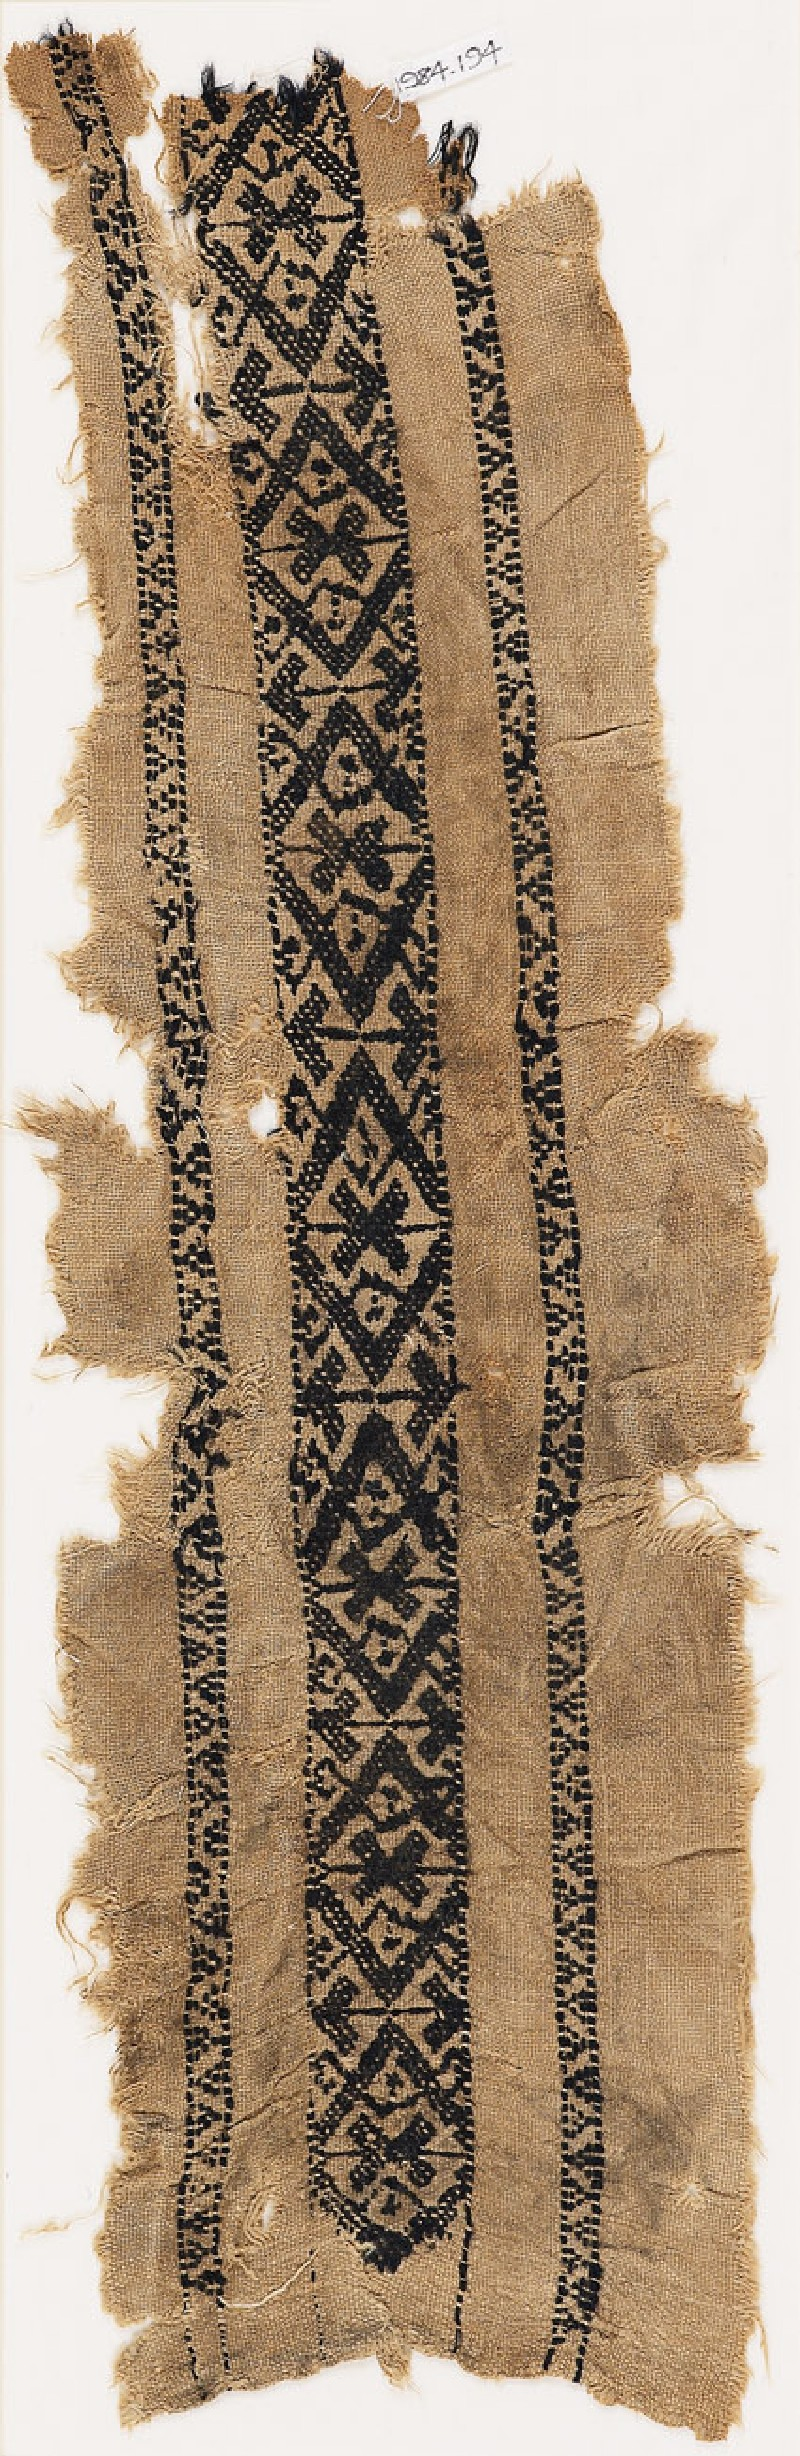 Textile fragment with diamond-shapes and arrows